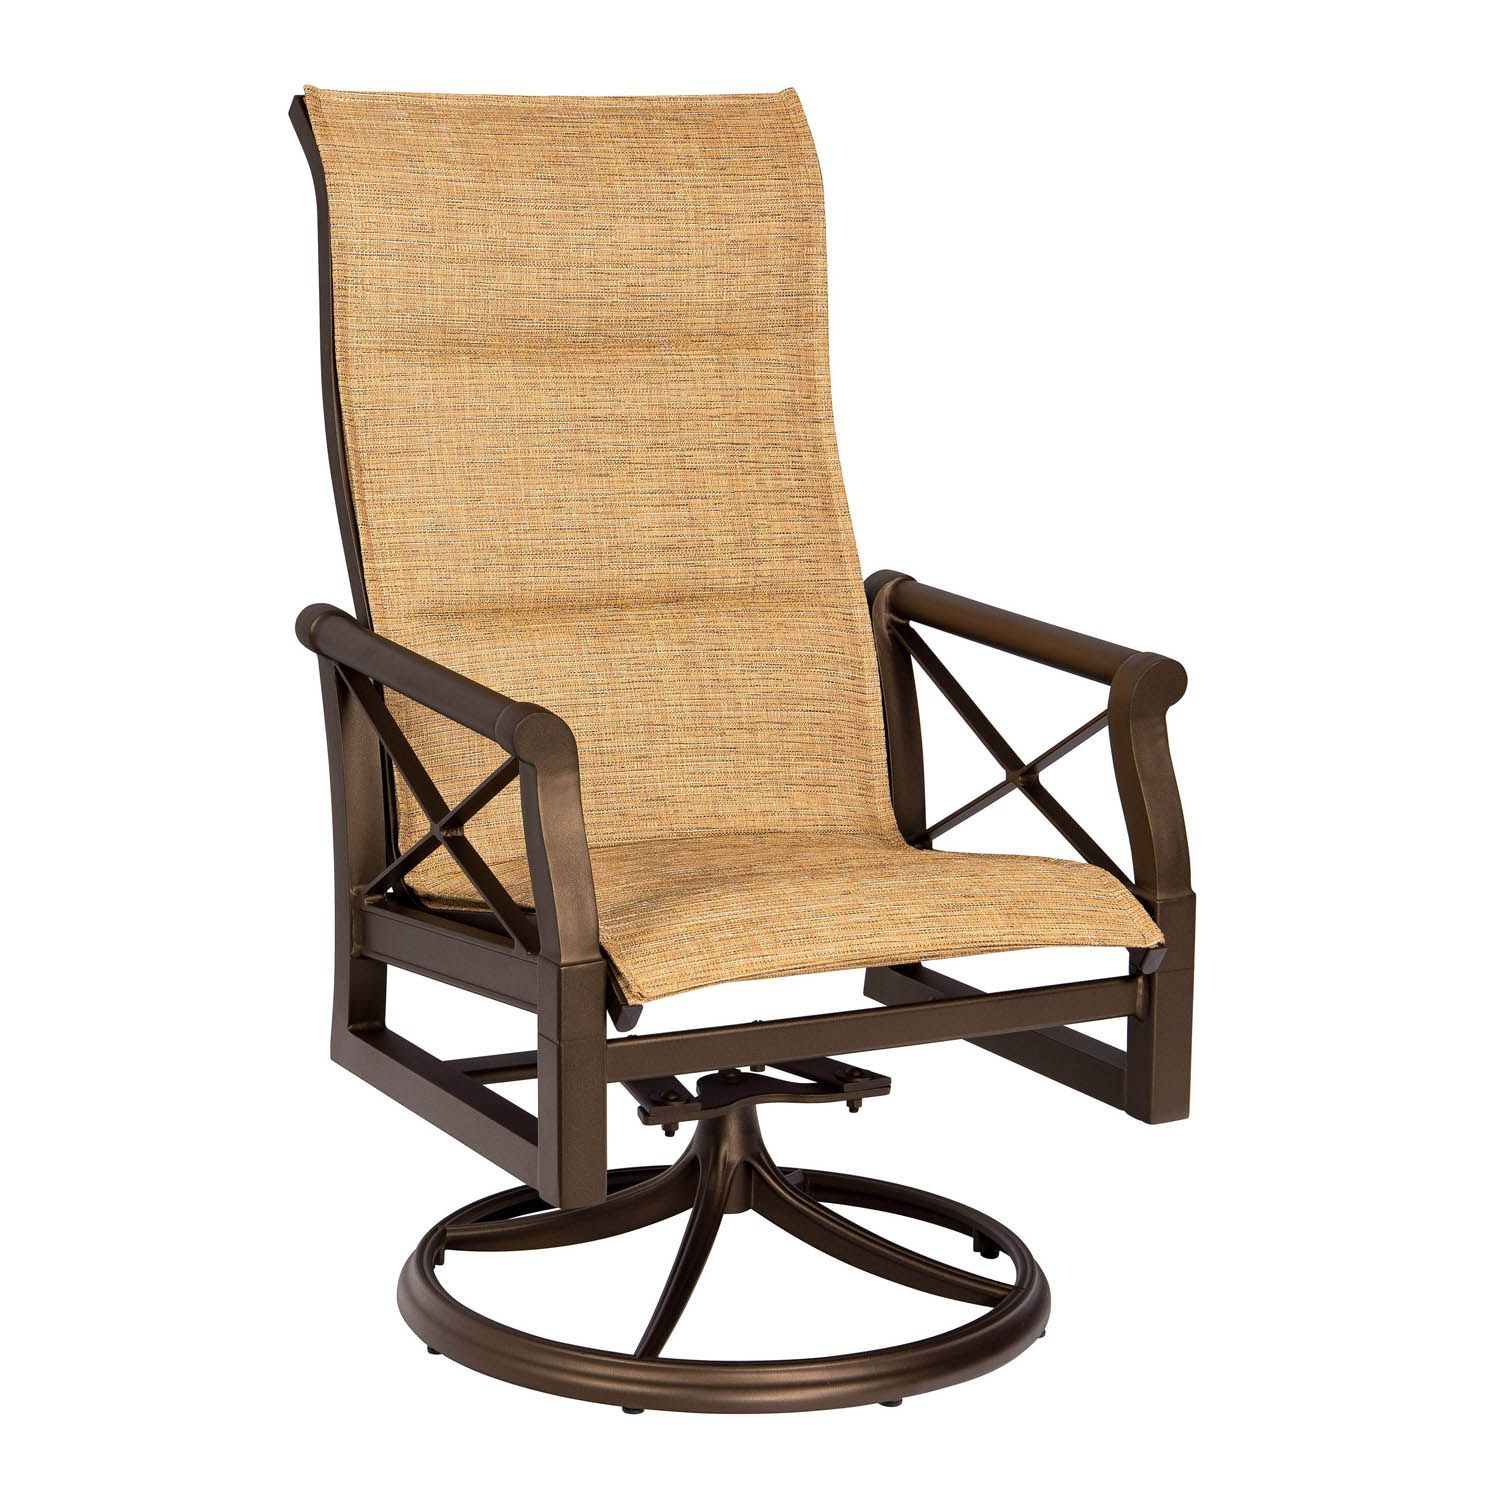 Andover Padded Sling High Back Swivel Rocking Dining Armchair With Regard To Sling High Back Swivel Chairs (View 25 of 25)